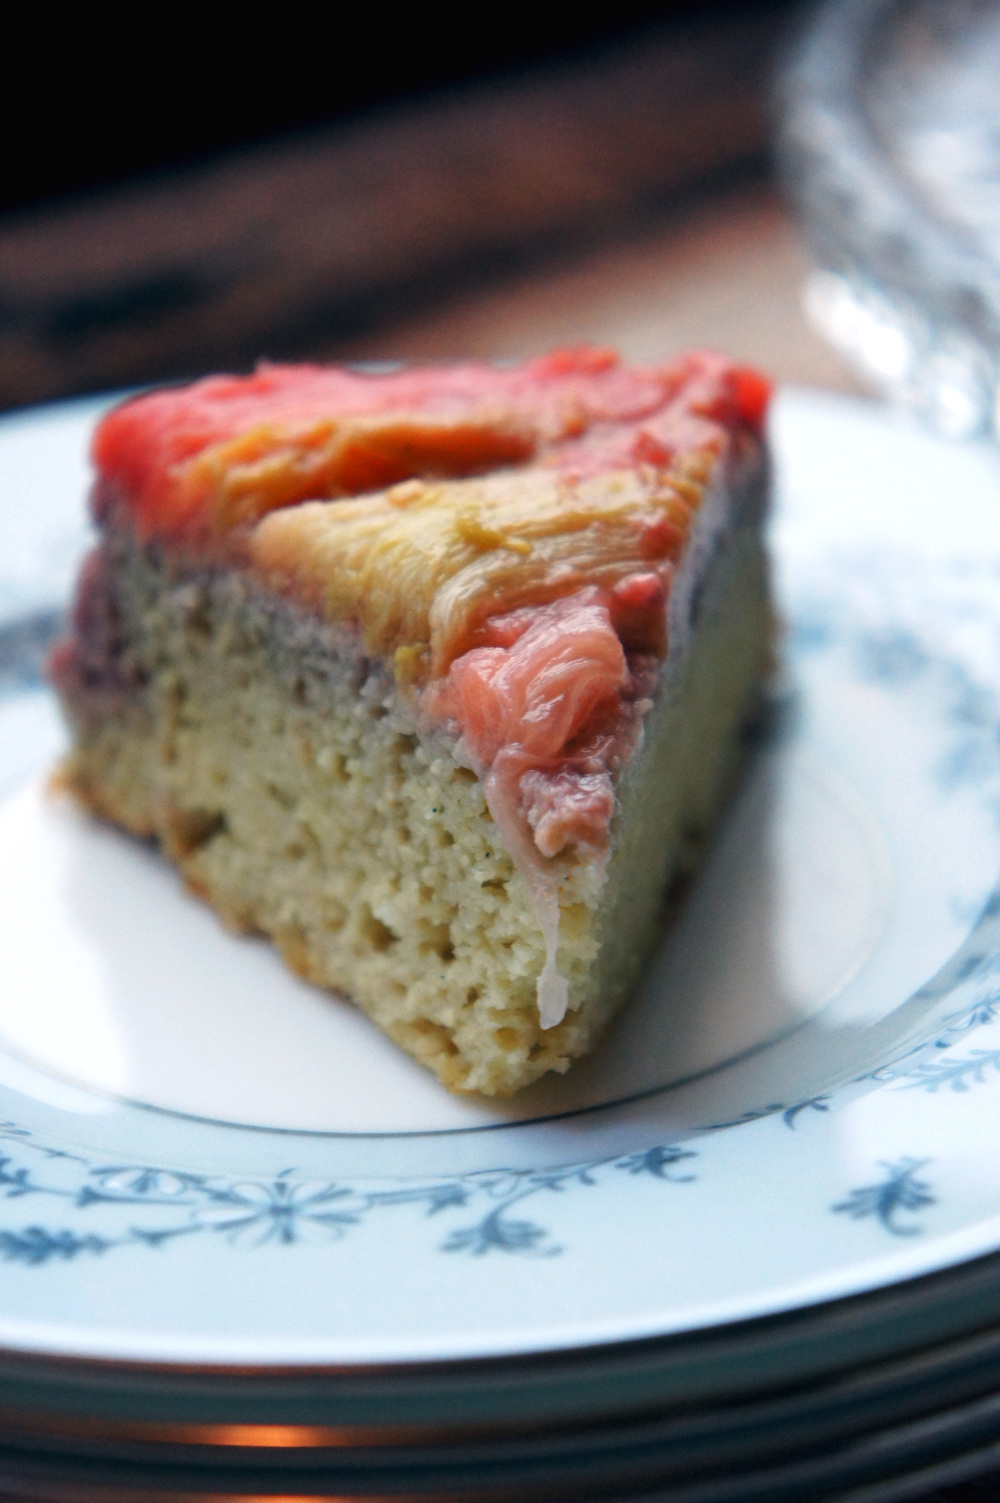 Rhubarb Cake that's paleo, gluten-free, and grain-free.